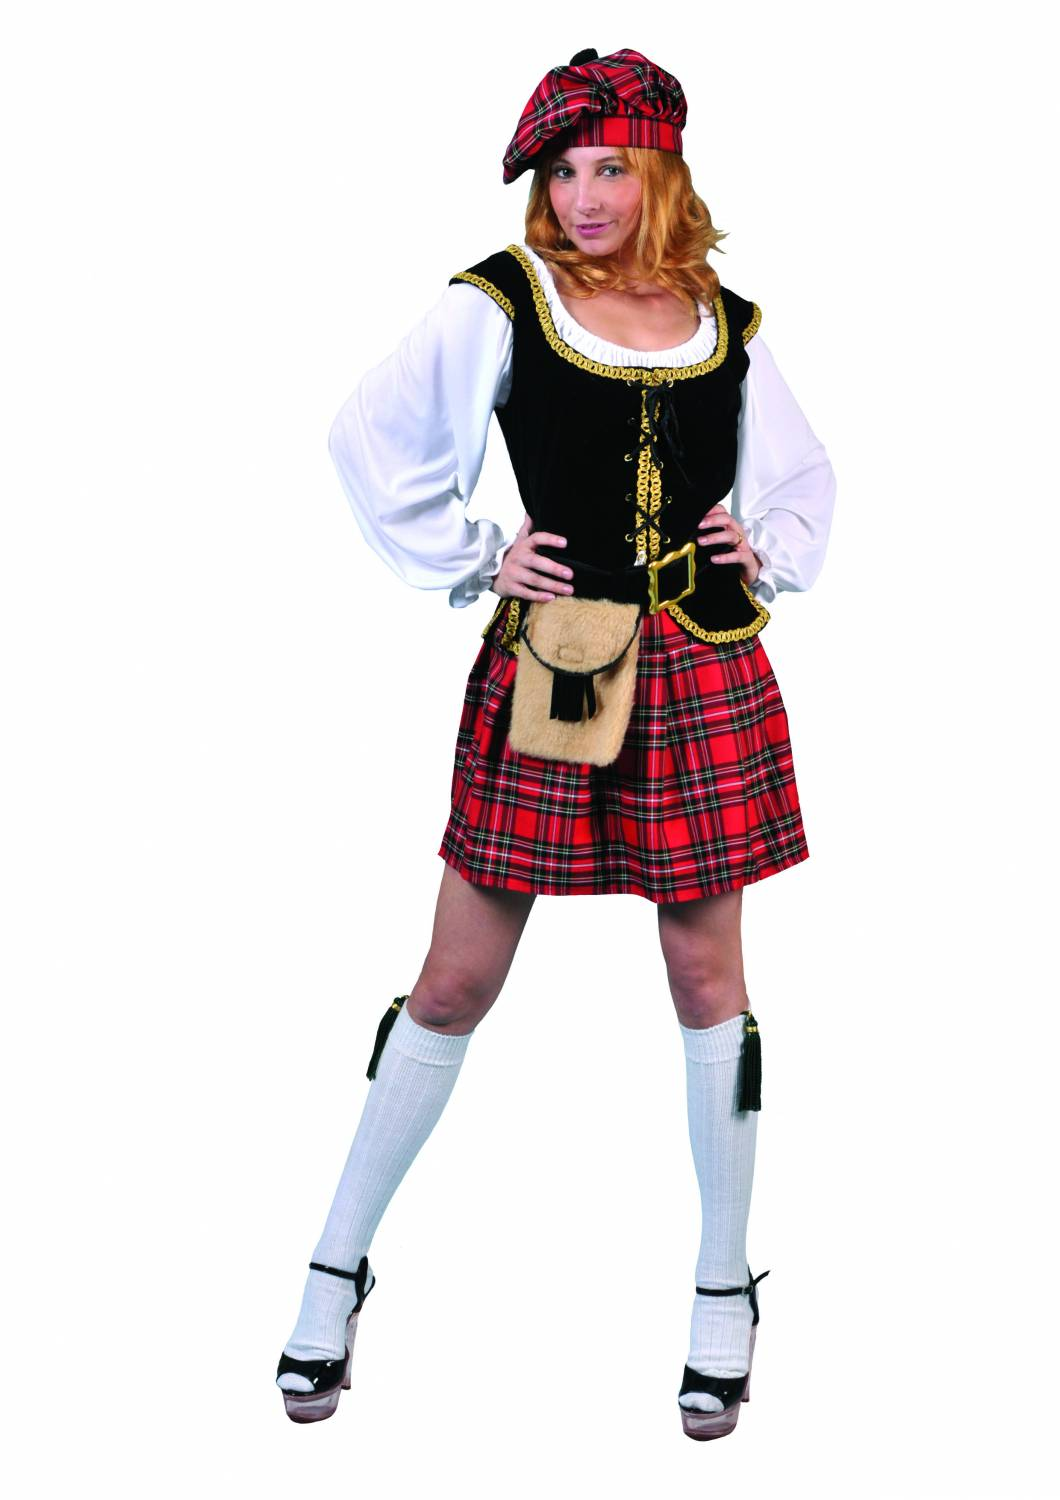 hair-sexy-scottish-costumes-bleeding-from-her